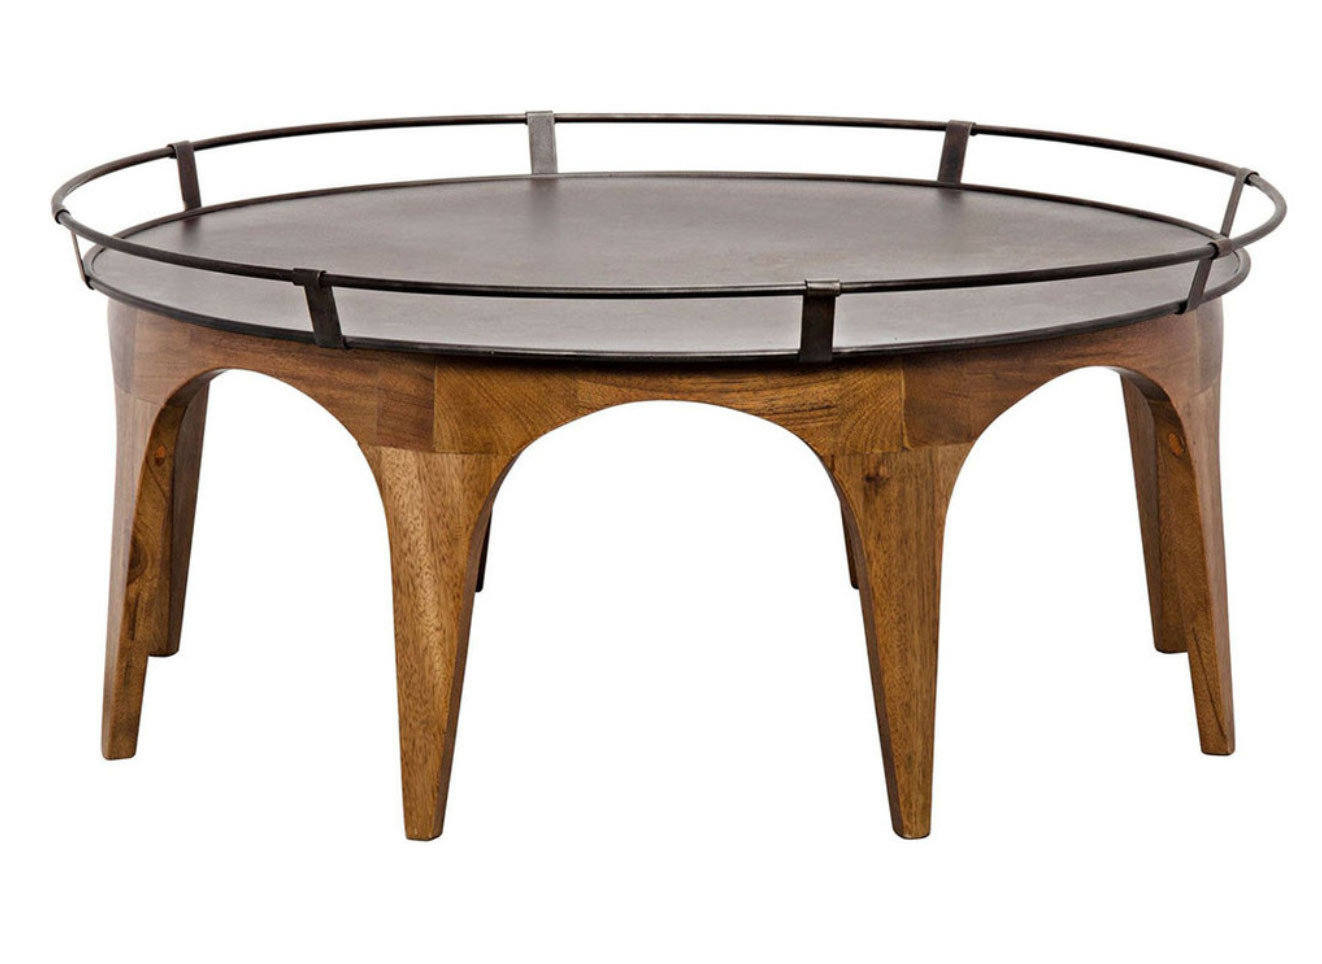 Style + Design Travel Shop furniture table product design coffee table angle outdoor table end table console table dining table